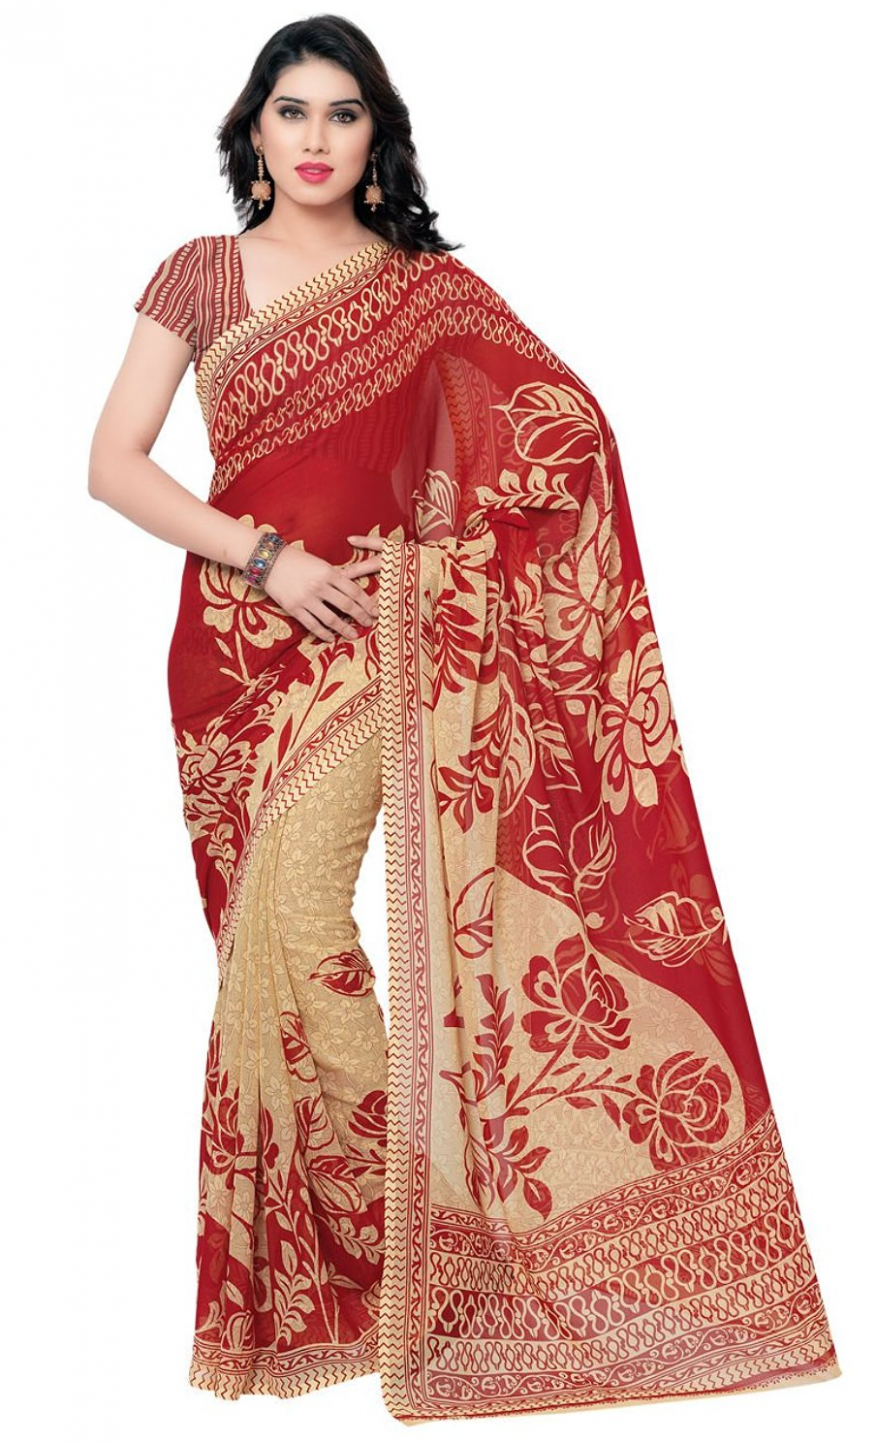 (Price up) Amazon - Buy Anand Sarees Saree (Ivory/Red) for